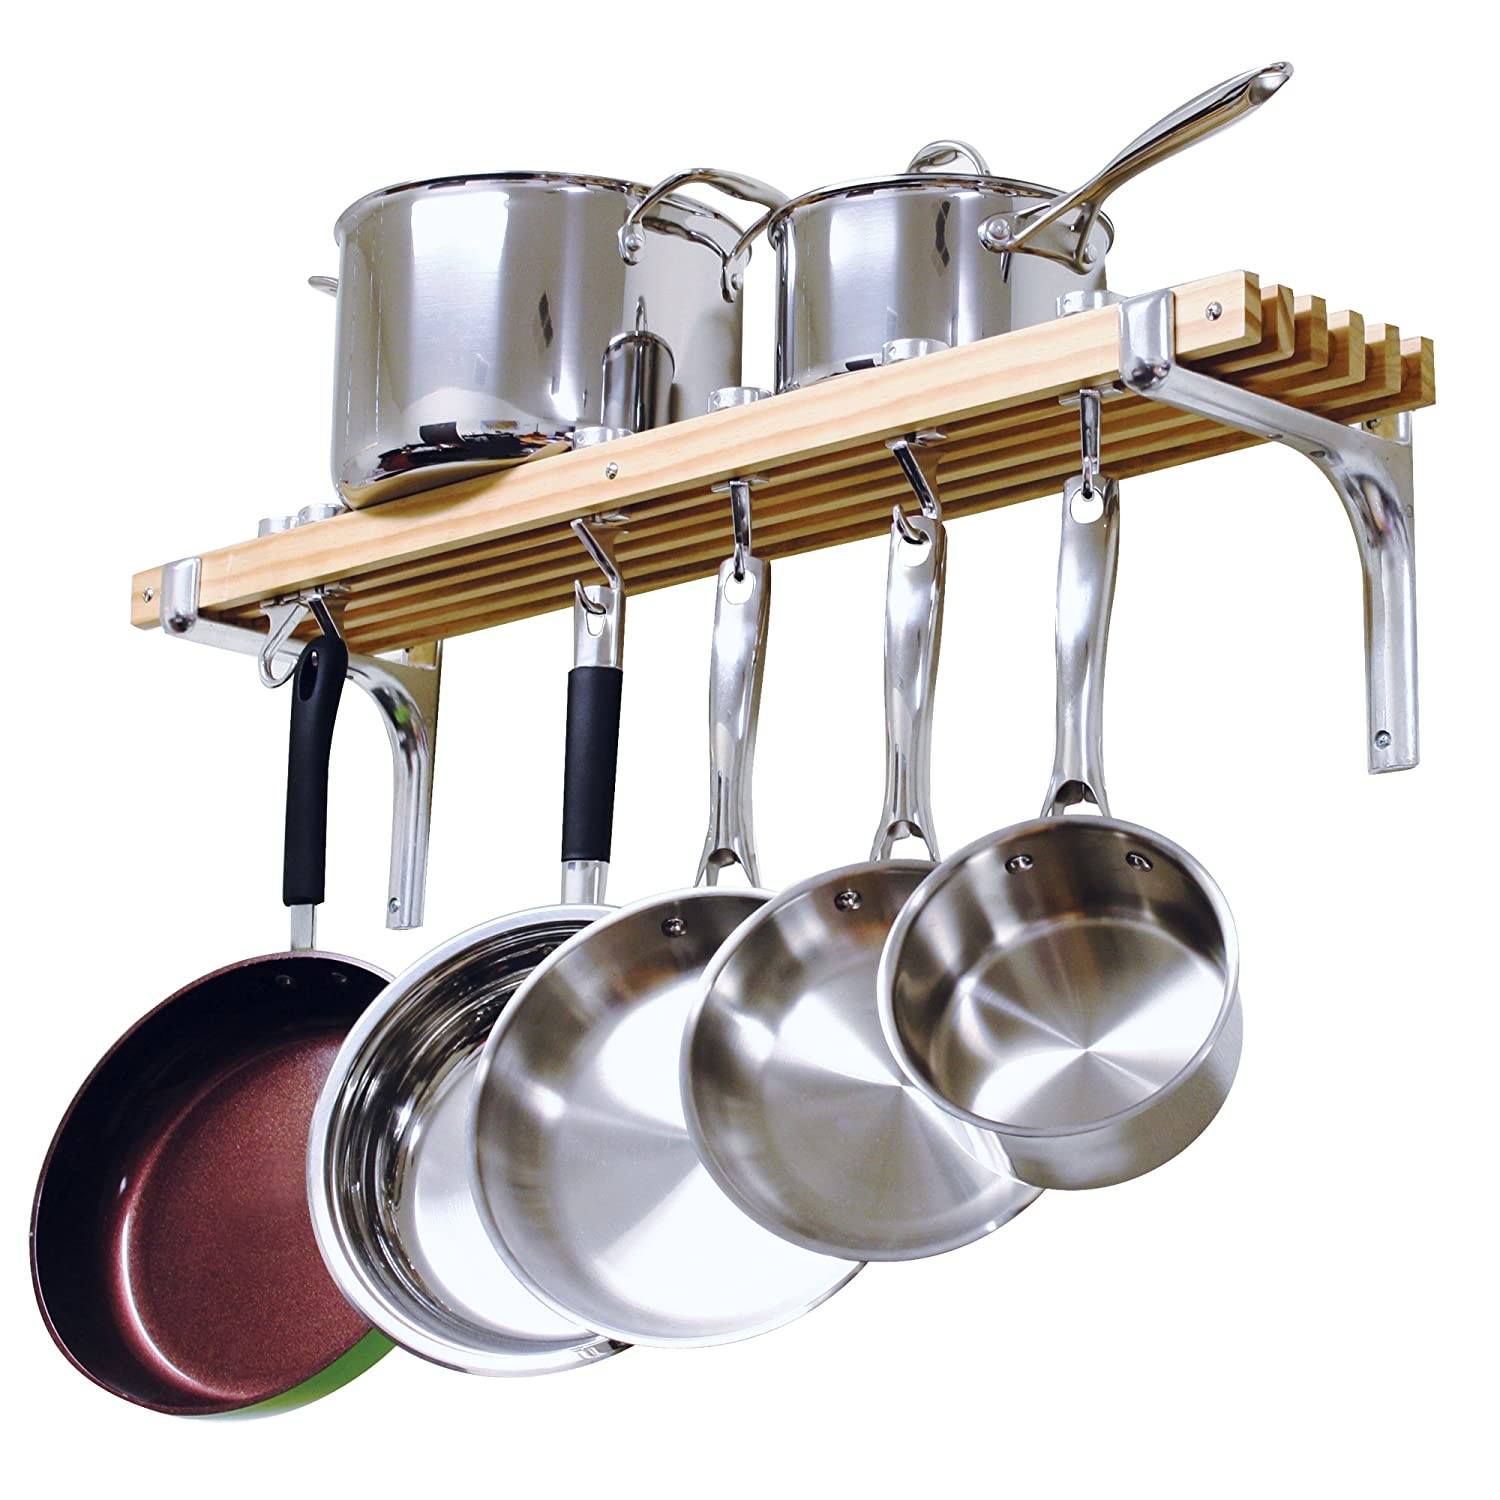 Delicieux Amazon.com | Cooks Standard Wall Mounted Wooden Pot Rack, 36 By 8 Inch: Kitchen  Pot Racks: Bowls